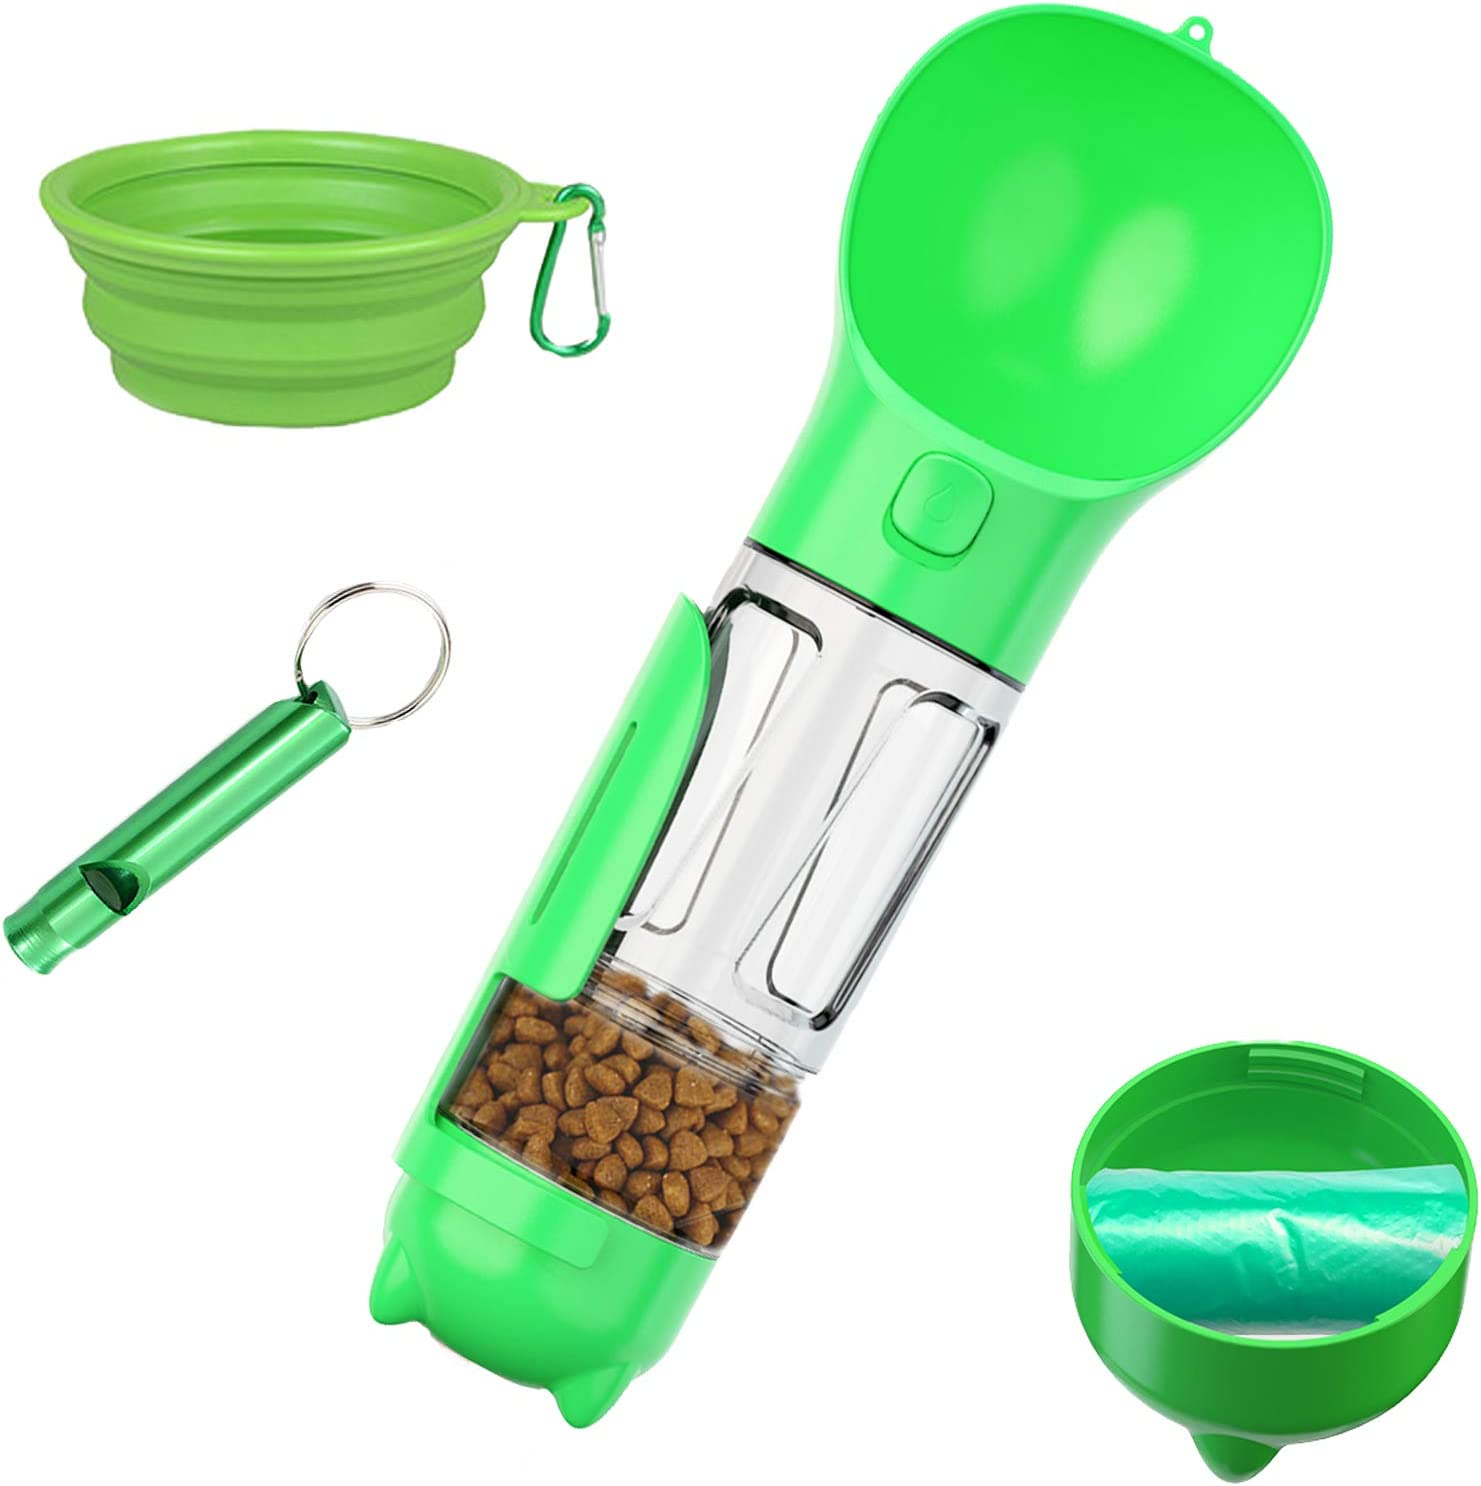 KAYUSITER Dog Water Bottle,4 IN1 Portable Pet Water Dispenser with Food Container Poop Shovel Garbage Bag for Travel Collapsible Dog Bowl and Dog Whistle